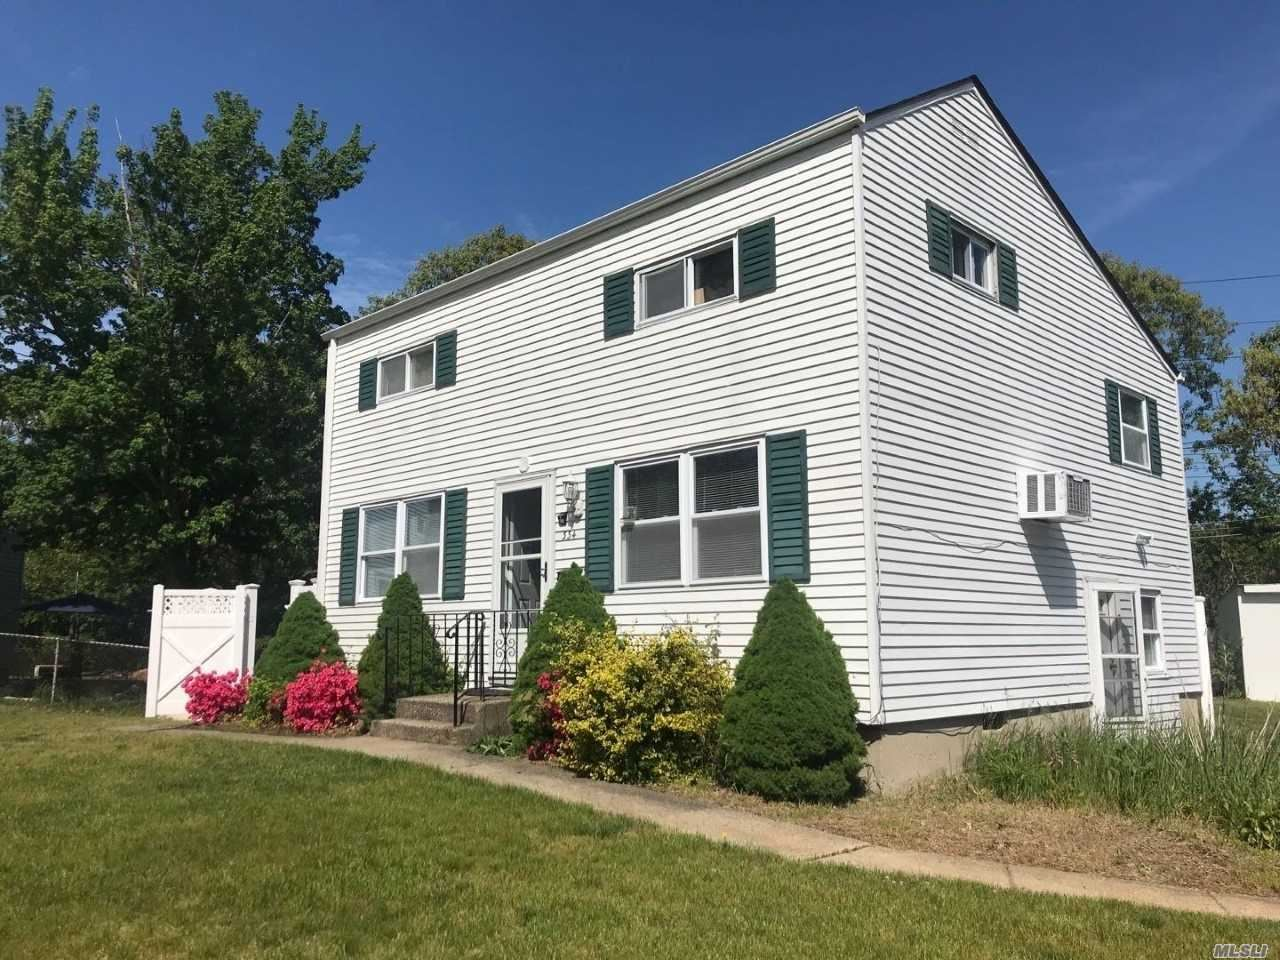 334 Eastwood Blvd, Centereach, NY 11720 - MLS#: 3236614